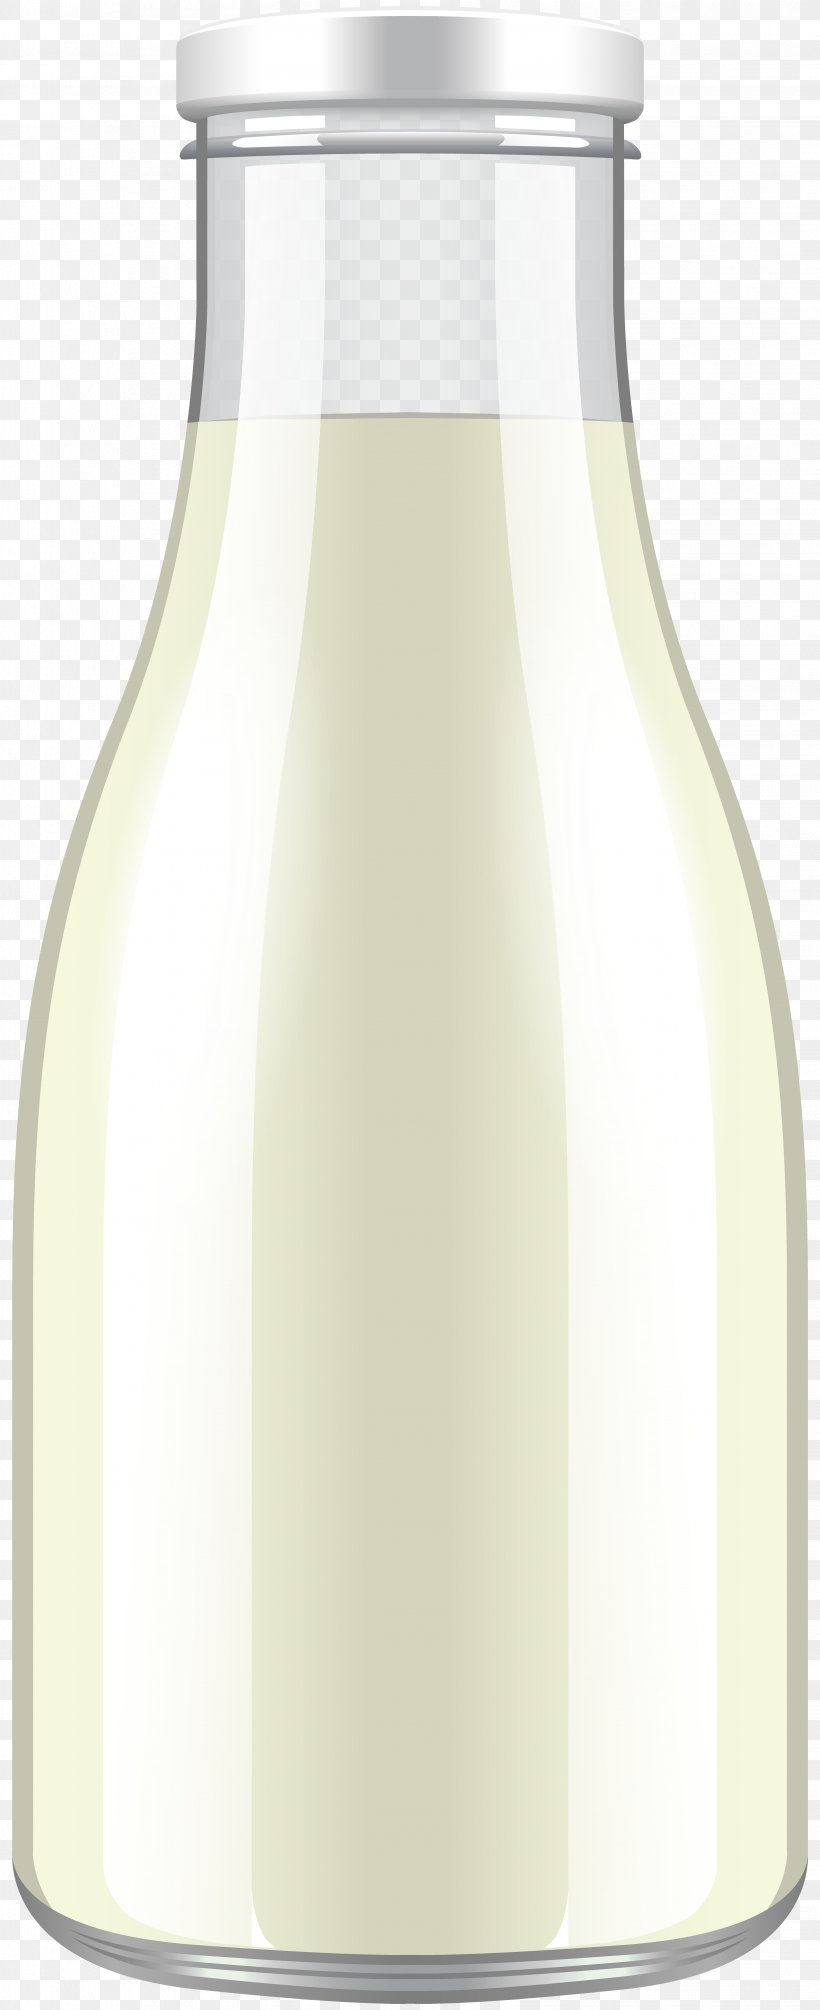 Bottle Glass, PNG, 3263x8000px, Glass, Bottle, Product.